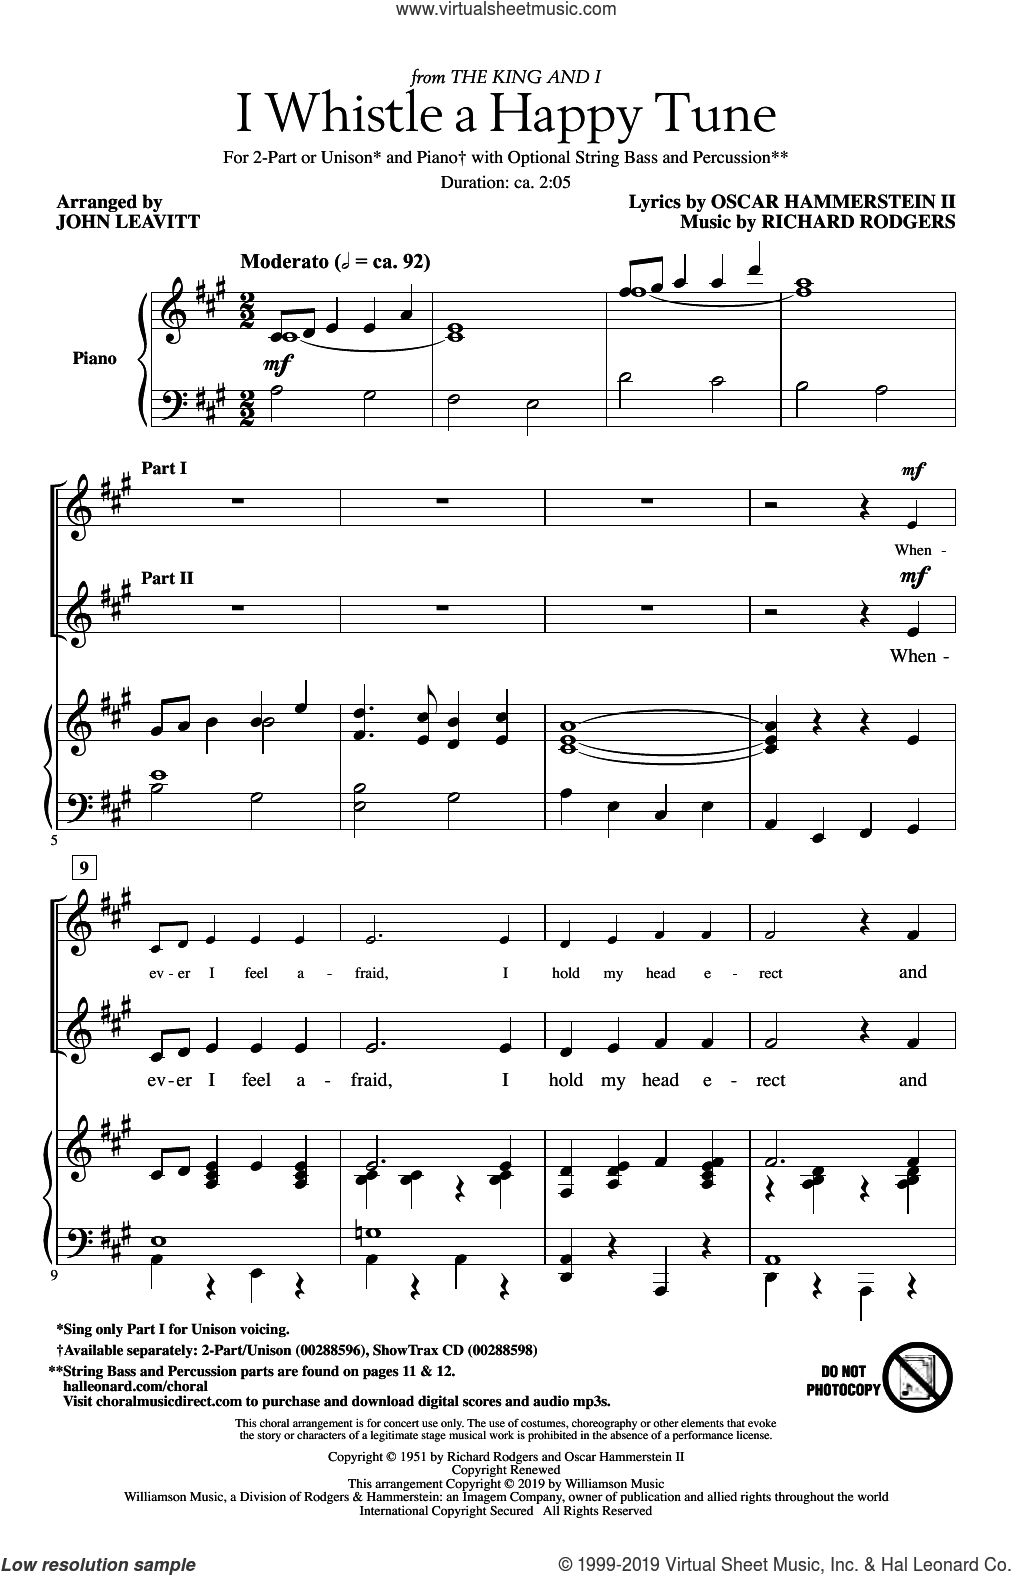 I Whistle A Happy Tune (from The King And I) (arr. John Leavitt) sheet music for choir (2-Part) by Richard Rodgers, John Leavitt, Oscar II Hammerstein and Rodgers & Hammerstein, intermediate duet